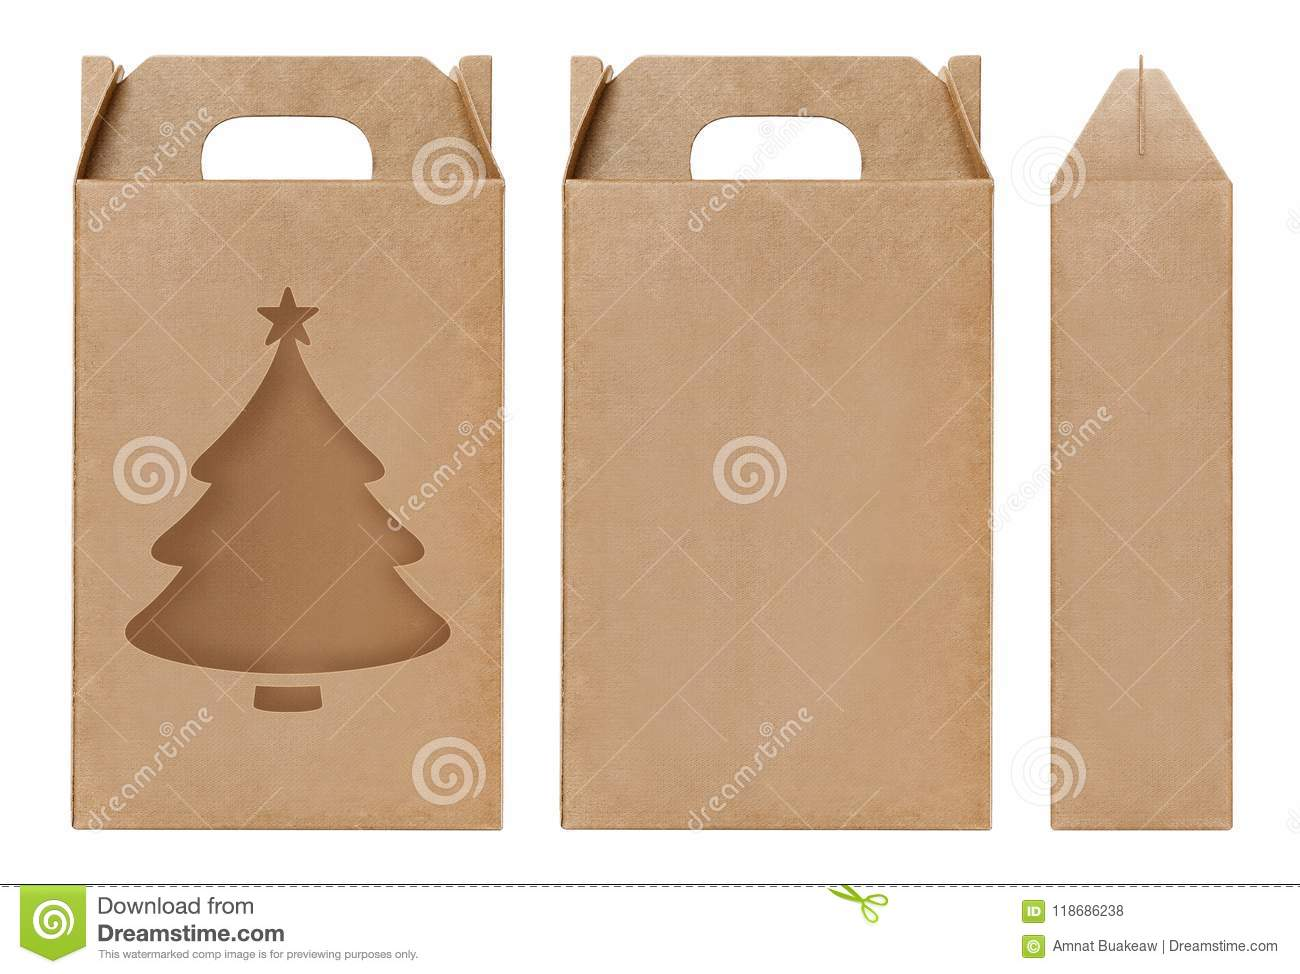 Box Brown Window Christmas Tree Shape Cut Out Packaging Template